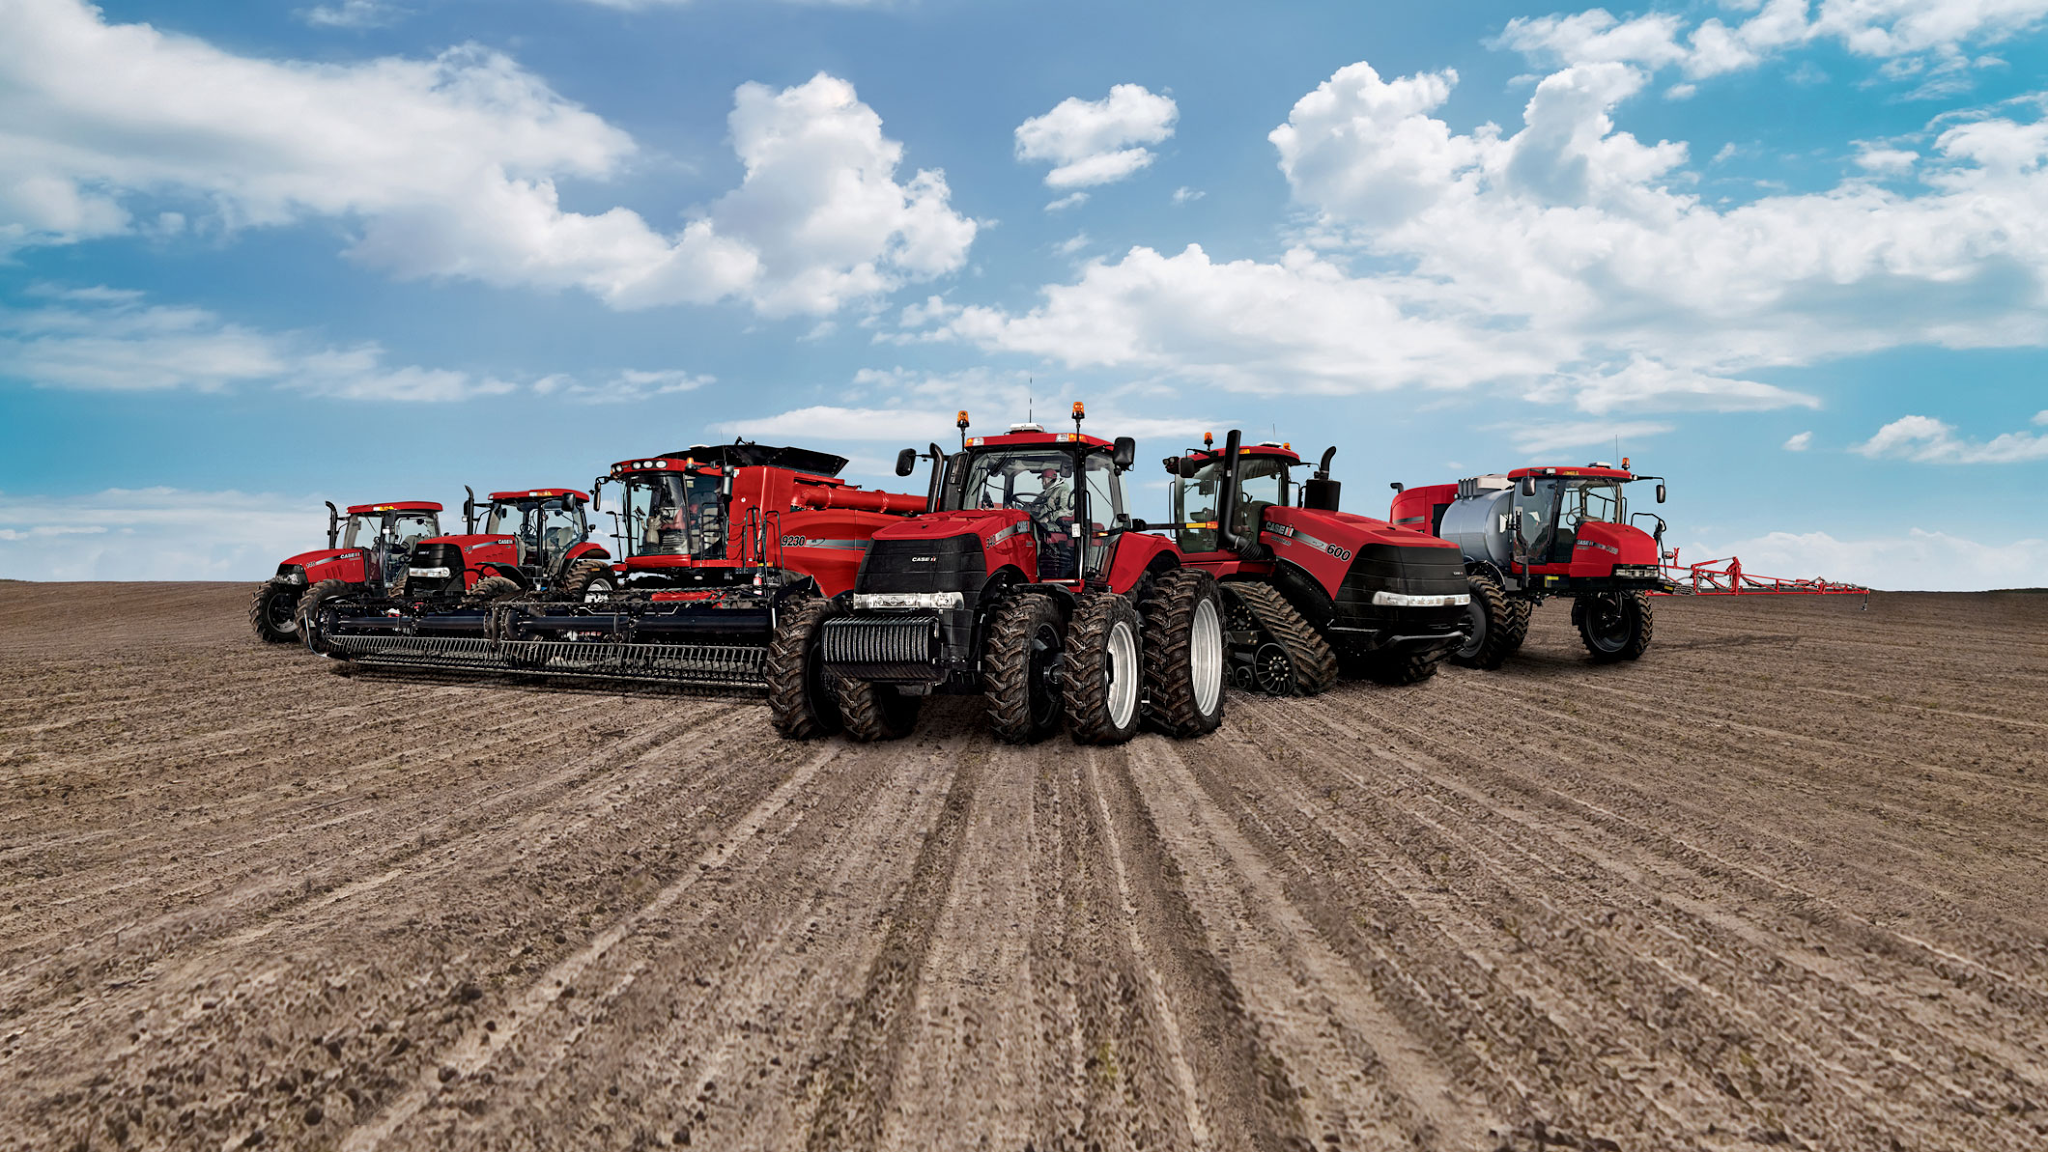 48 case ih wallpaper on wallpapersafari - Farmall tractor wallpaper border ...